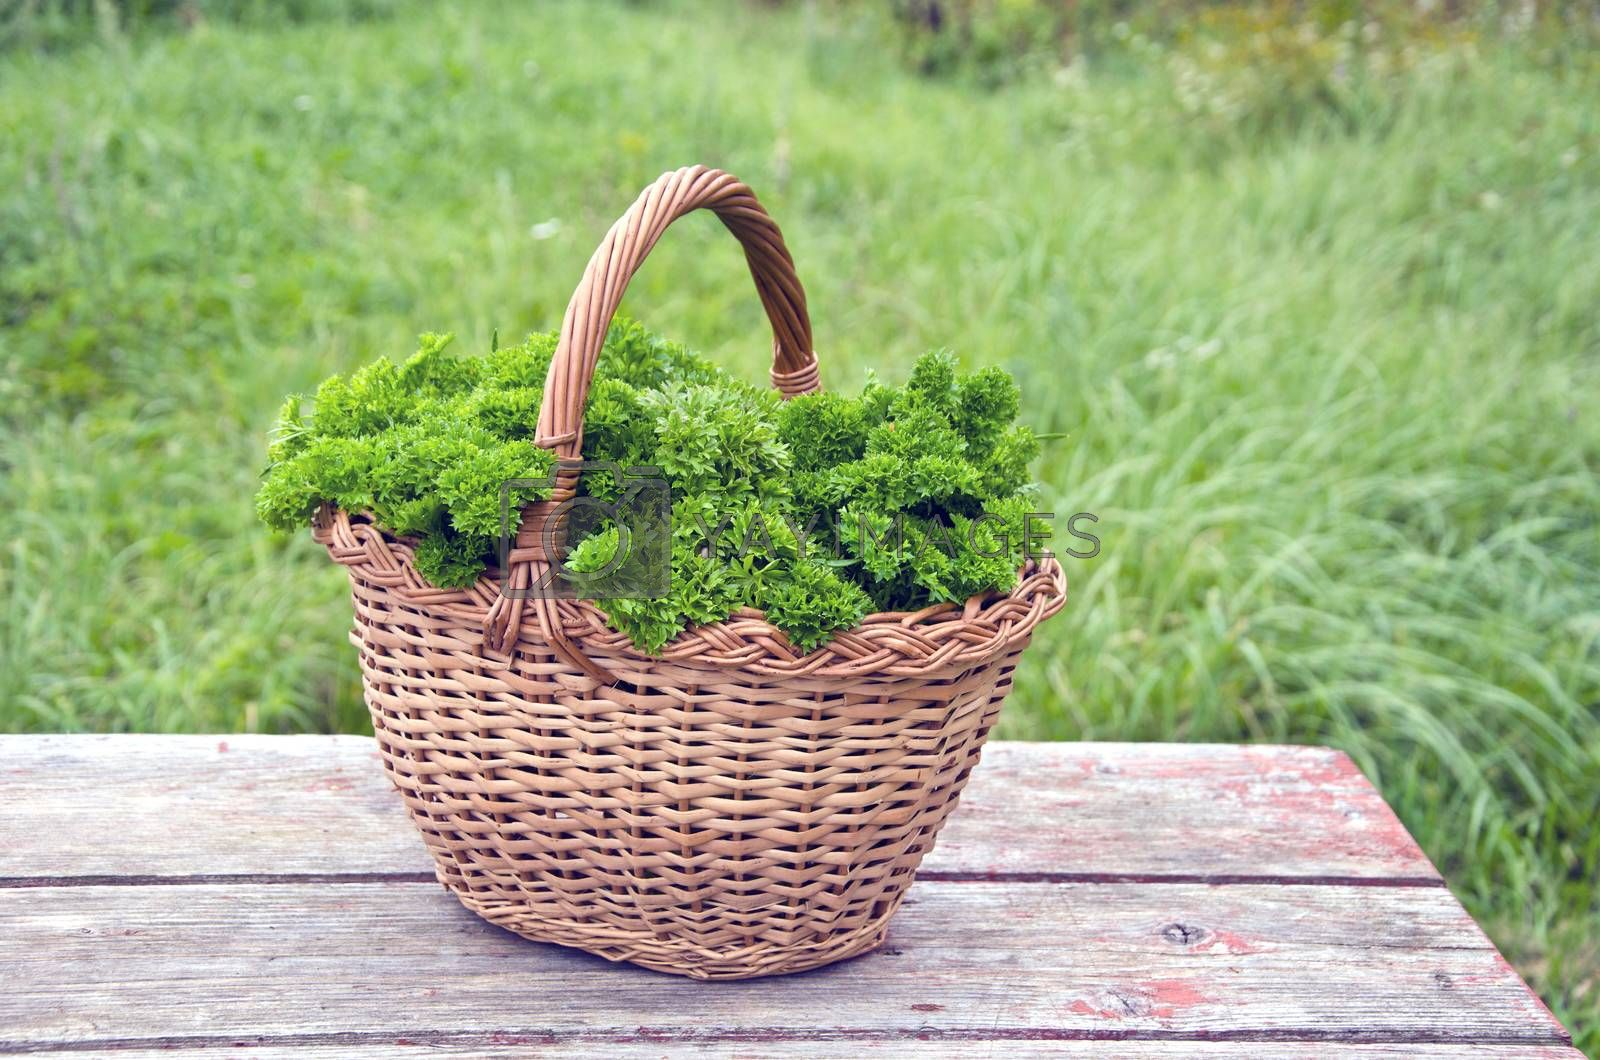 Royalty free image of Fresh parsley in wicker basket on wooden table by alis_photo